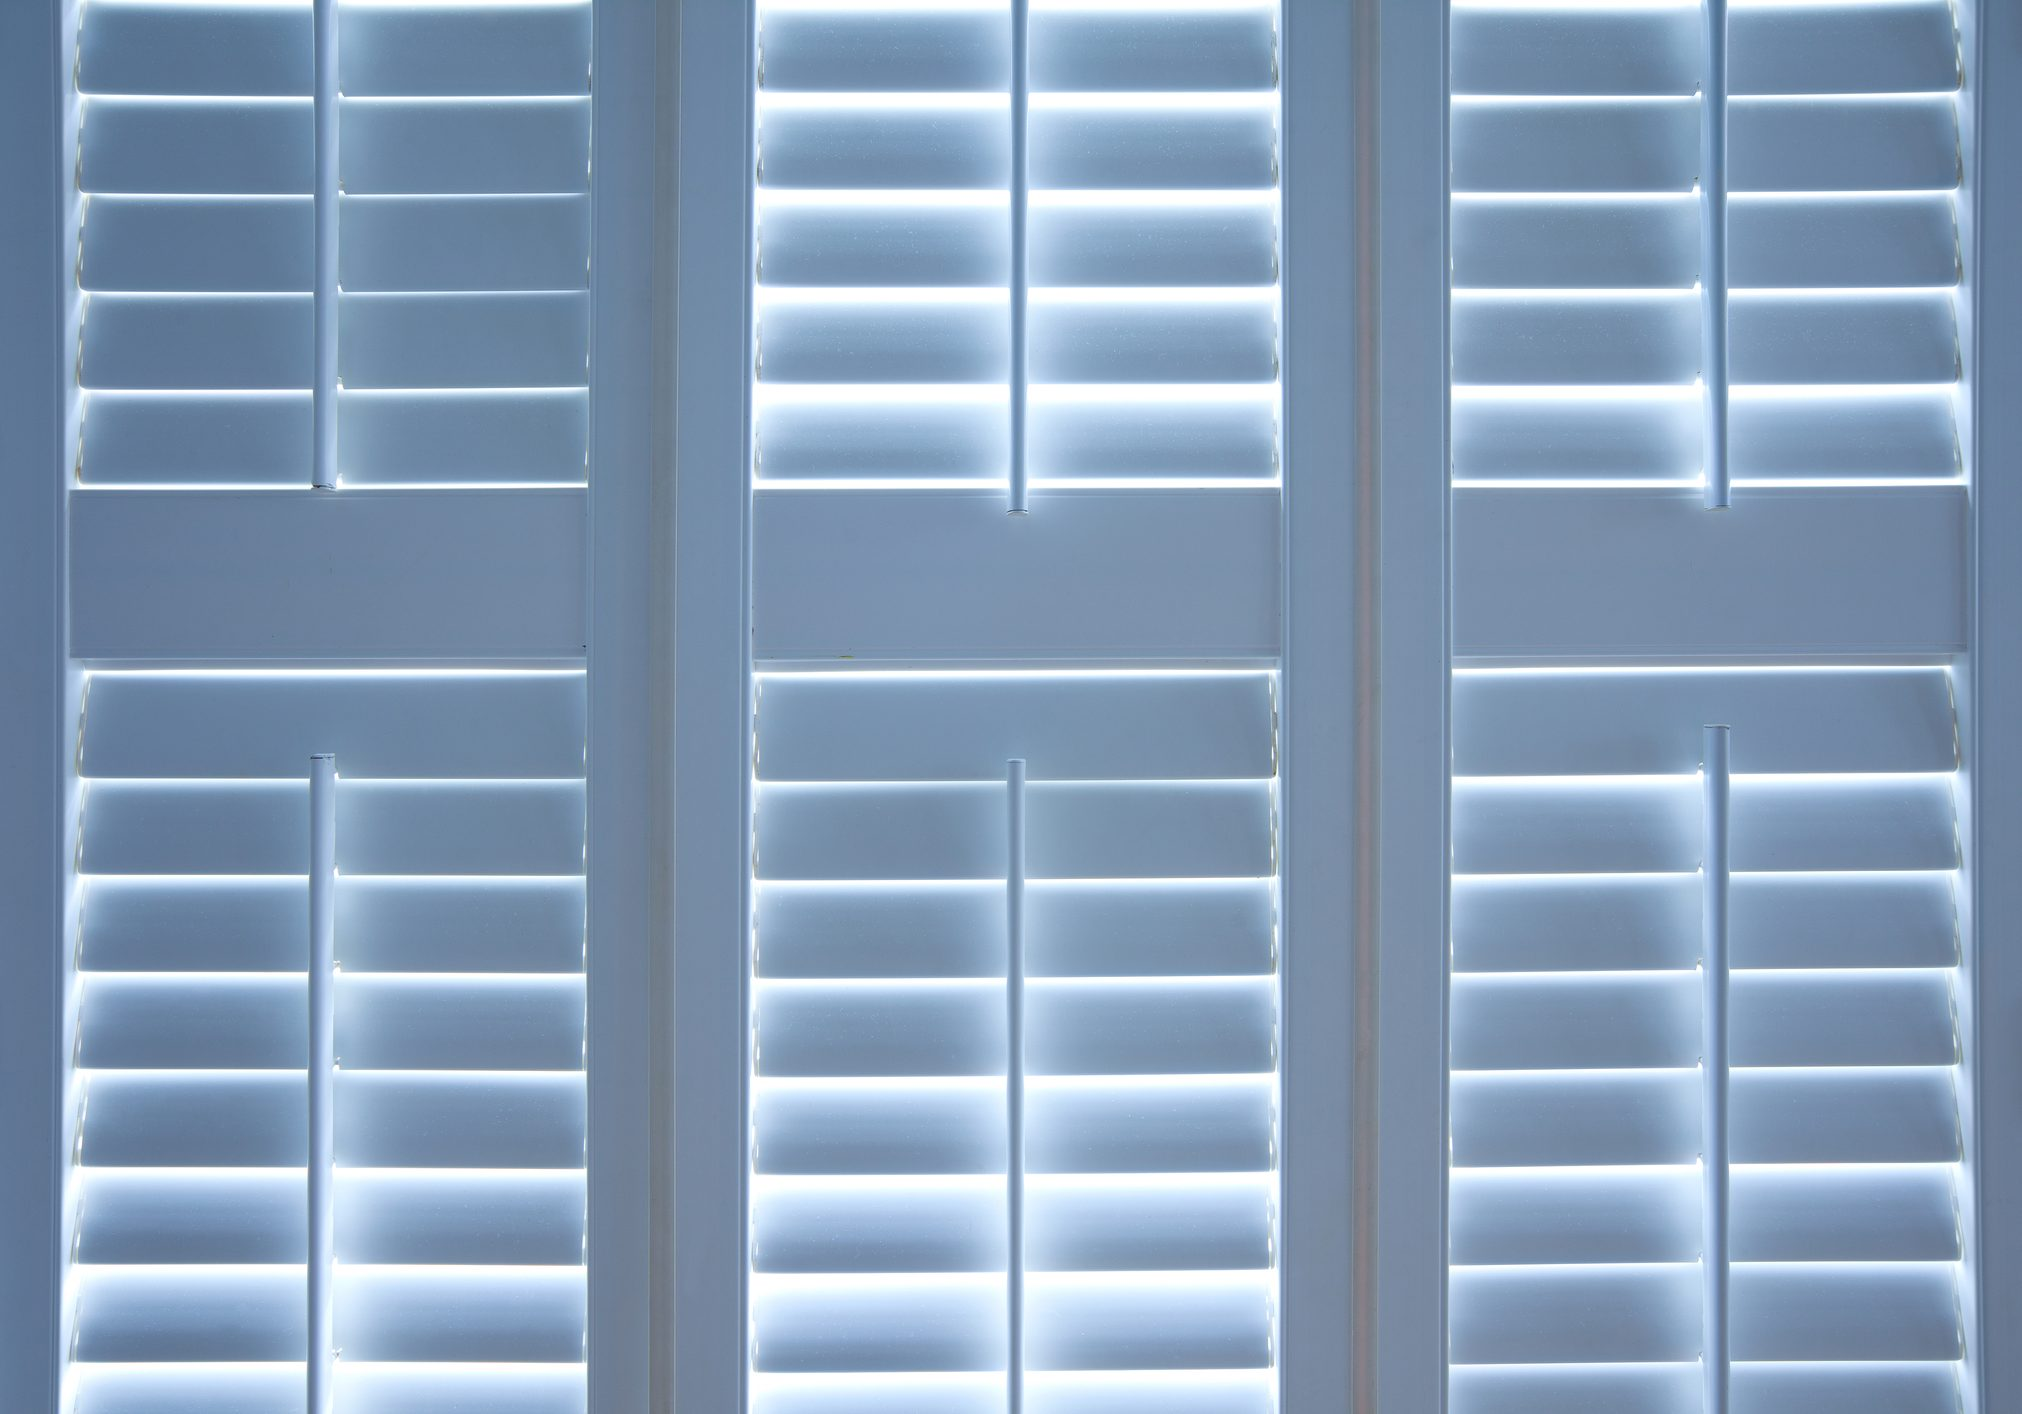 Detail of closed blinds